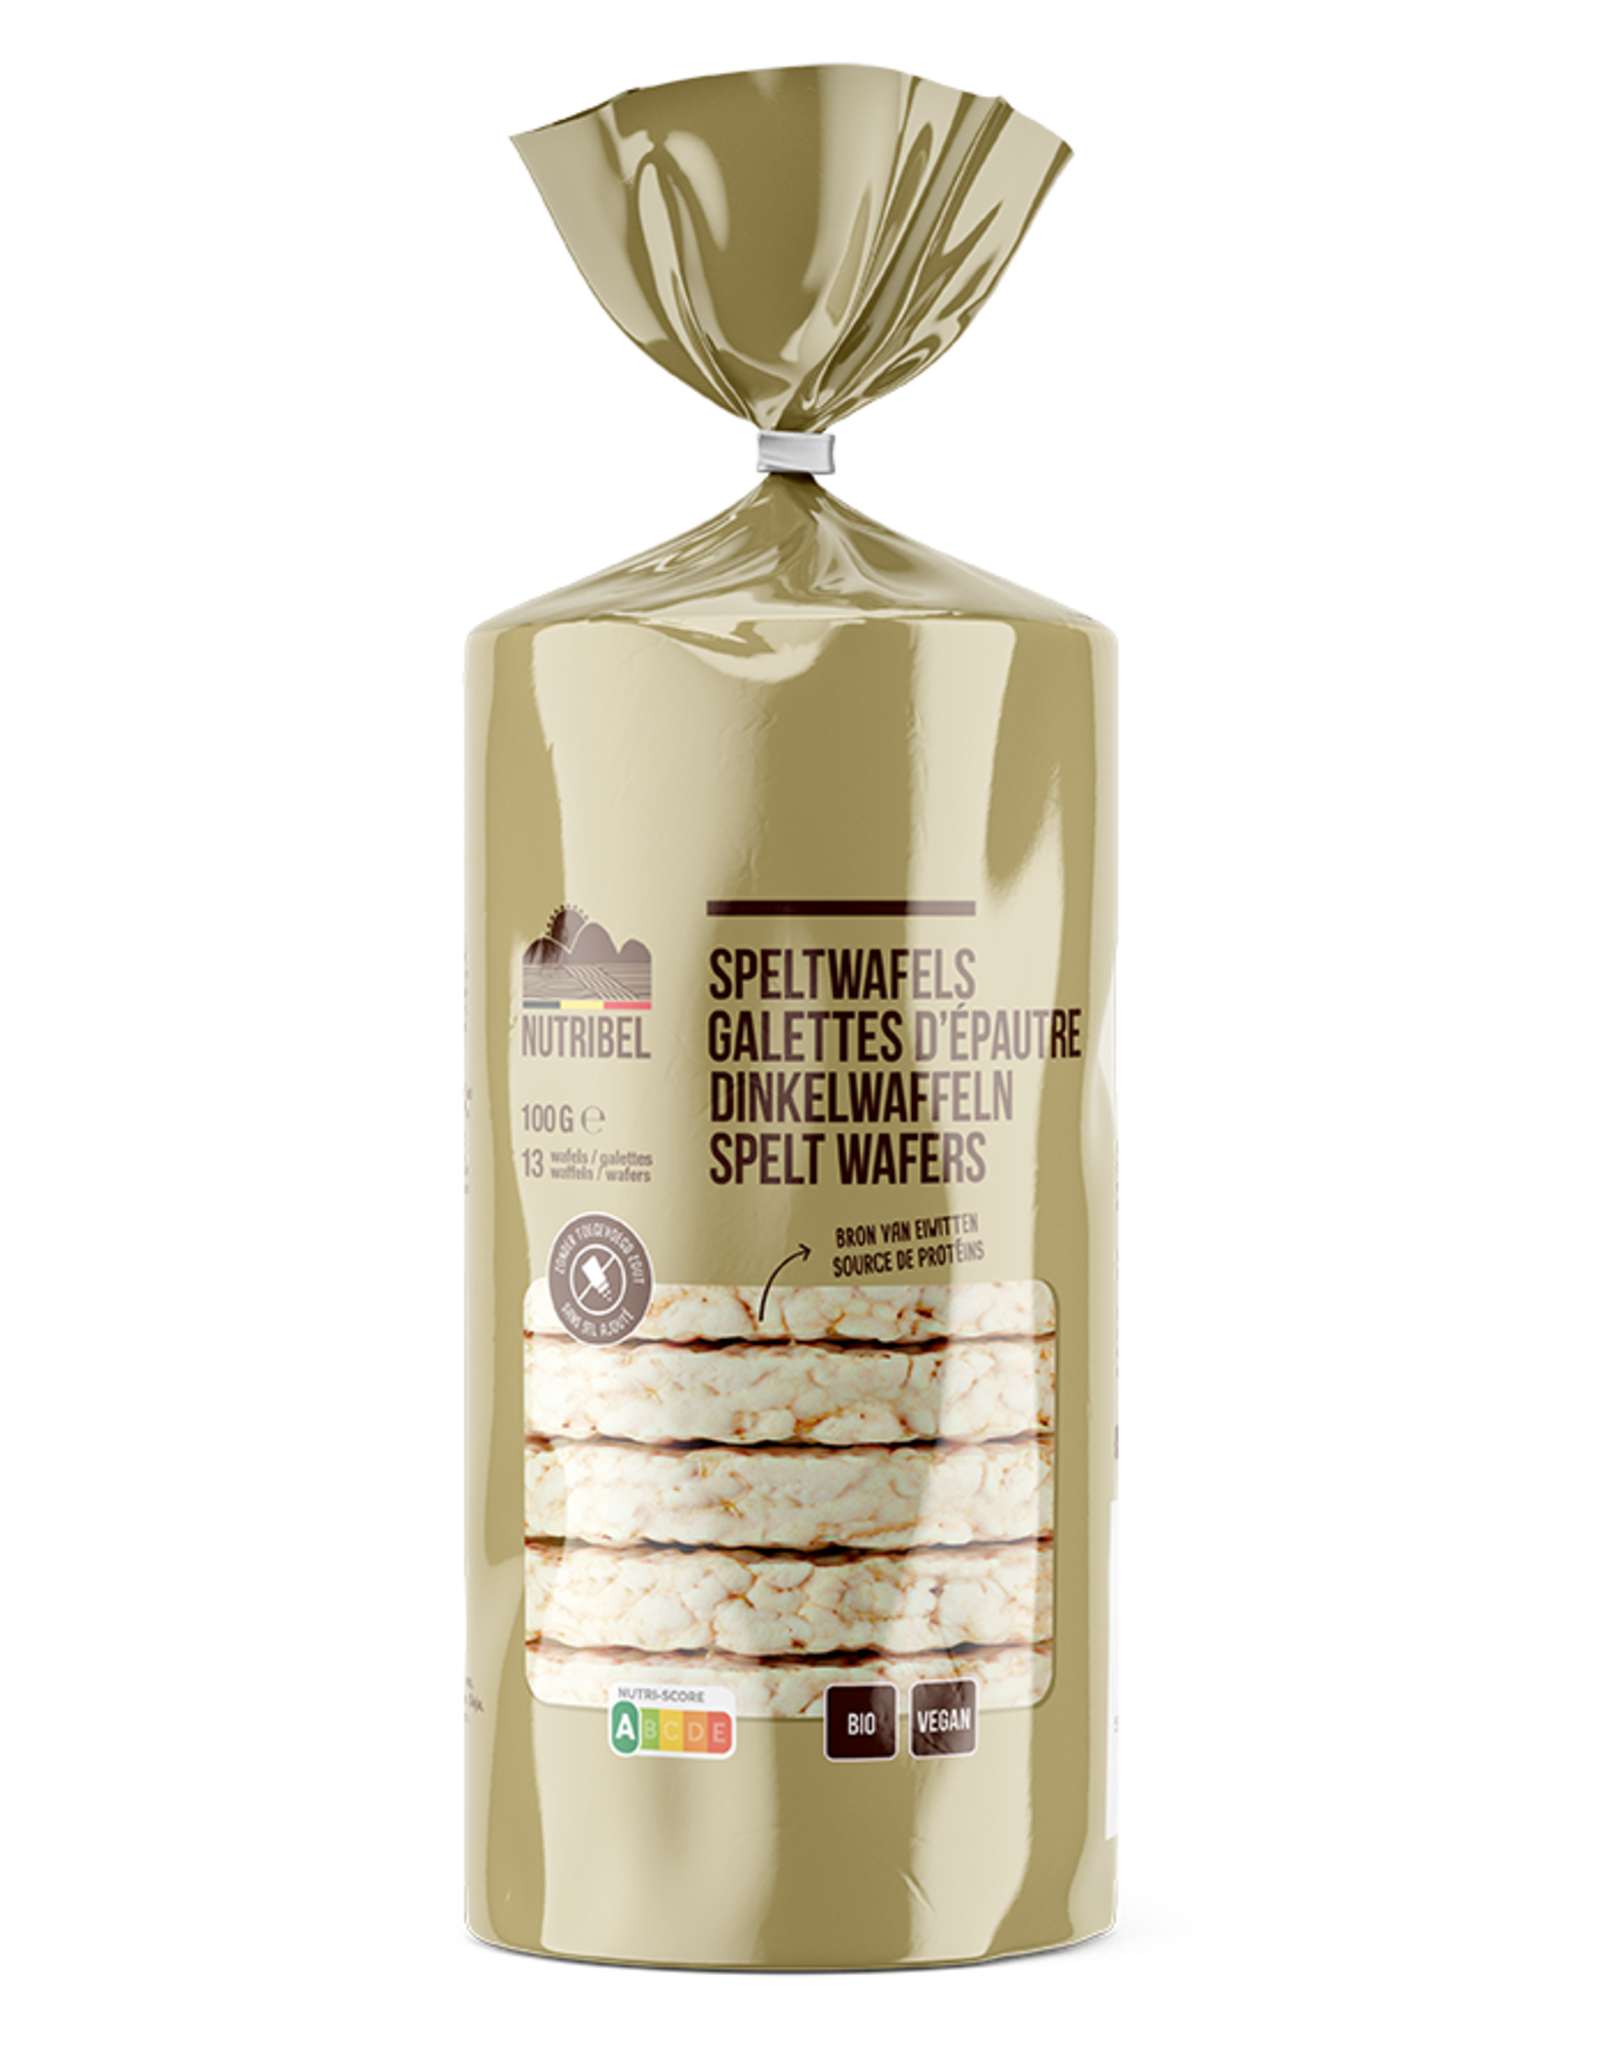 Nutribel Galettes d'epeautre ss bio 100g